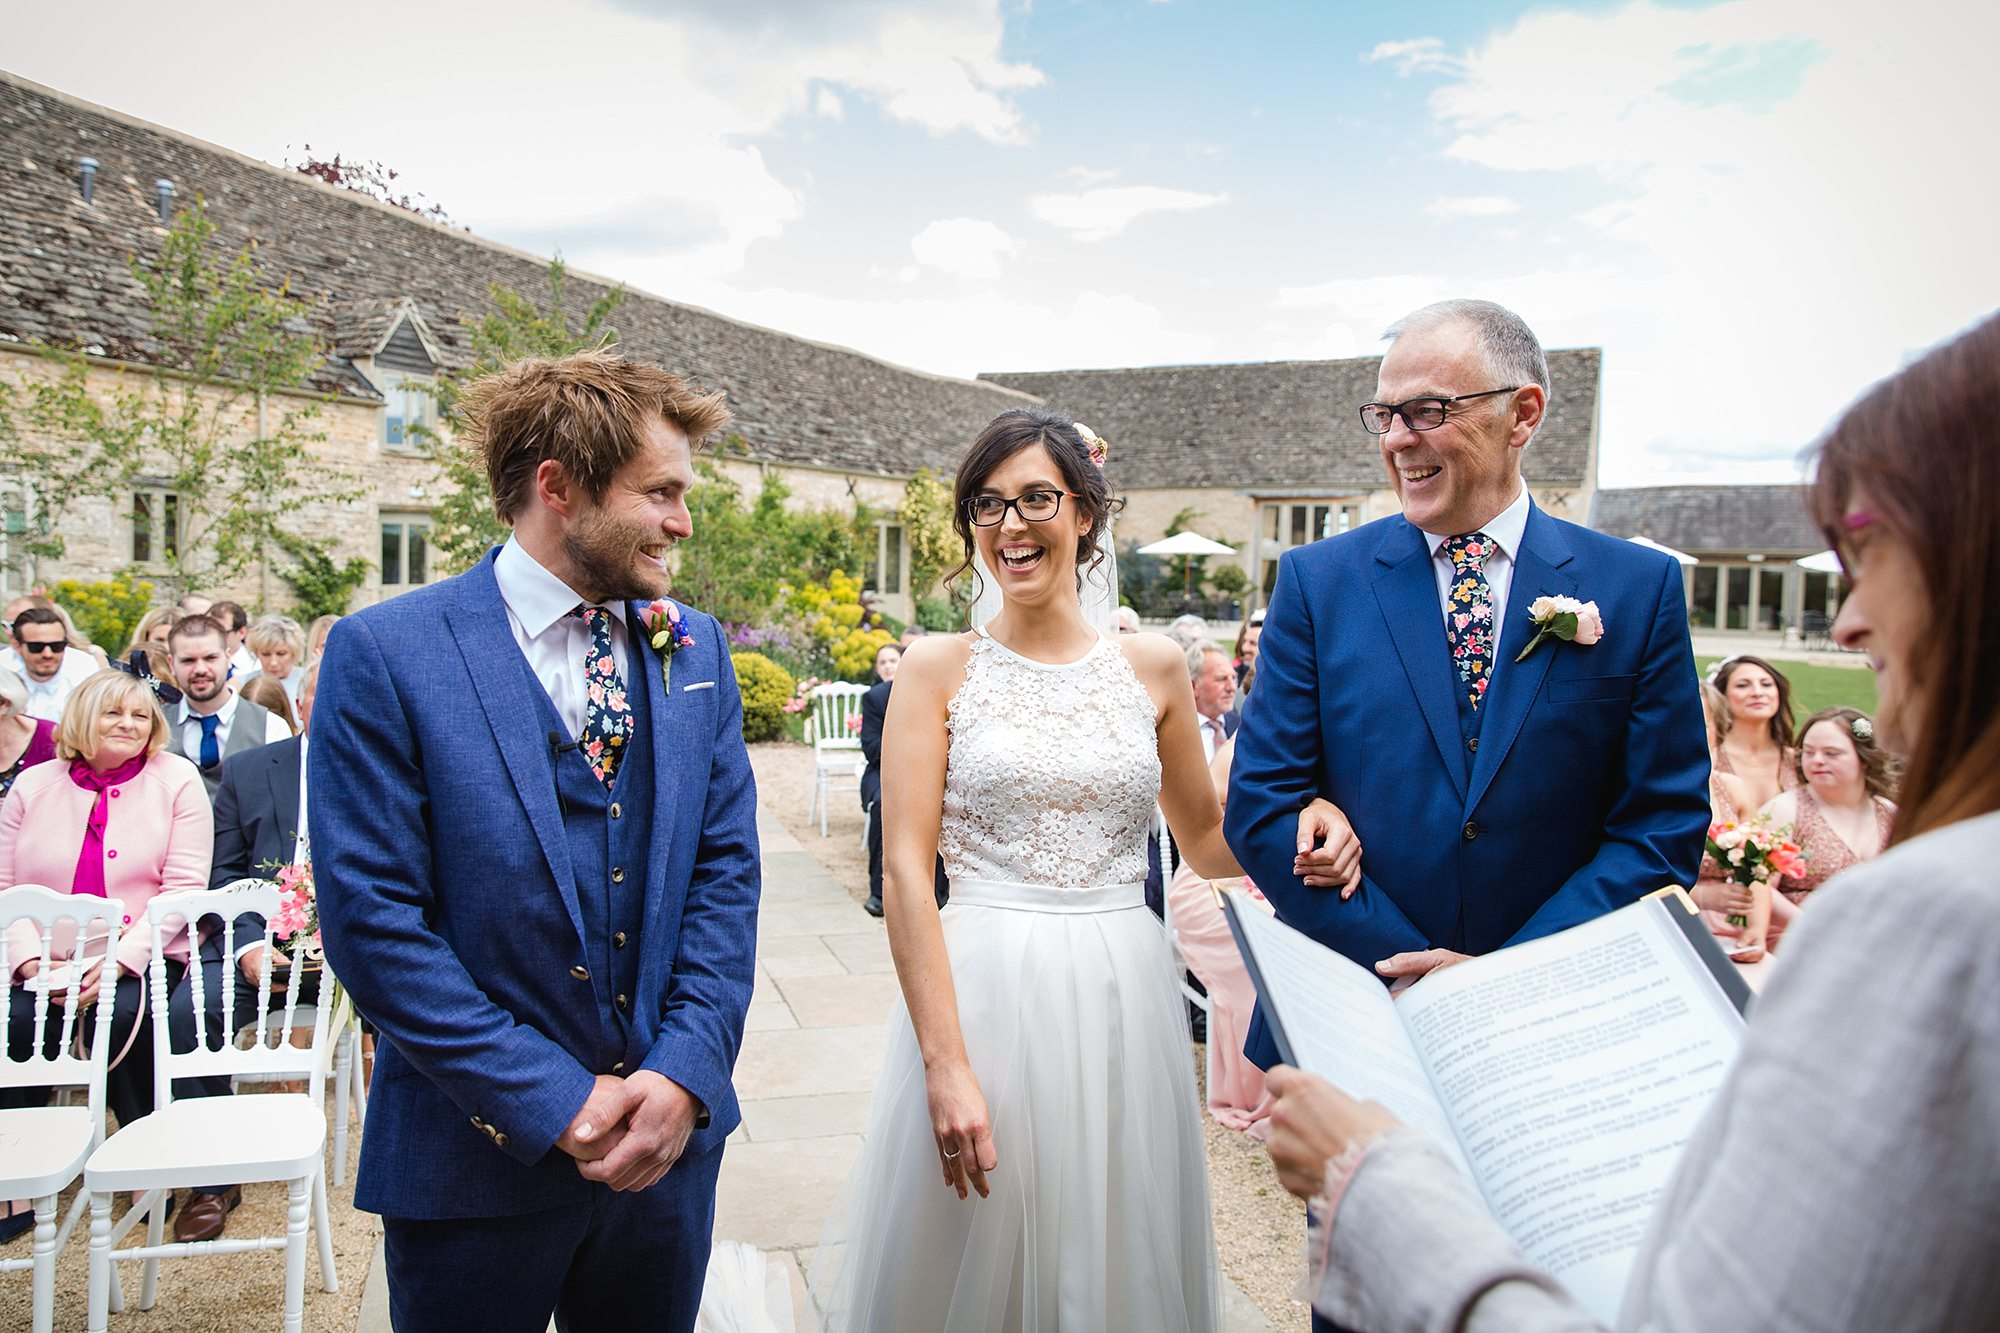 Caswell House Wedding bride laughs with groom and her father during ceremony